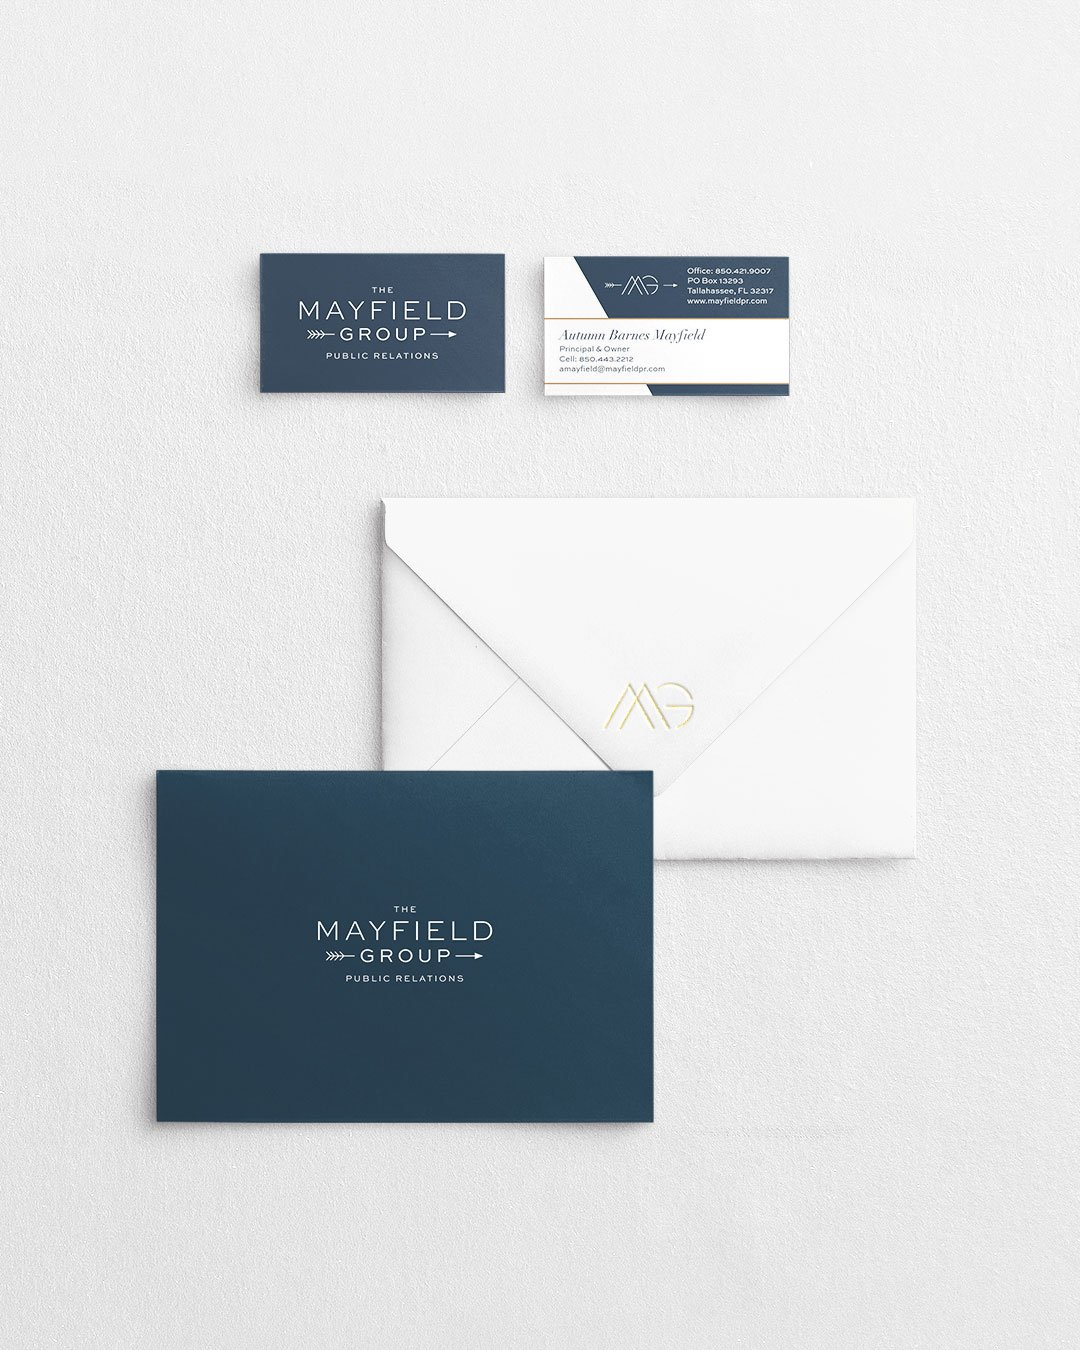 custom collateral design card mayfield group public relations by taney creative